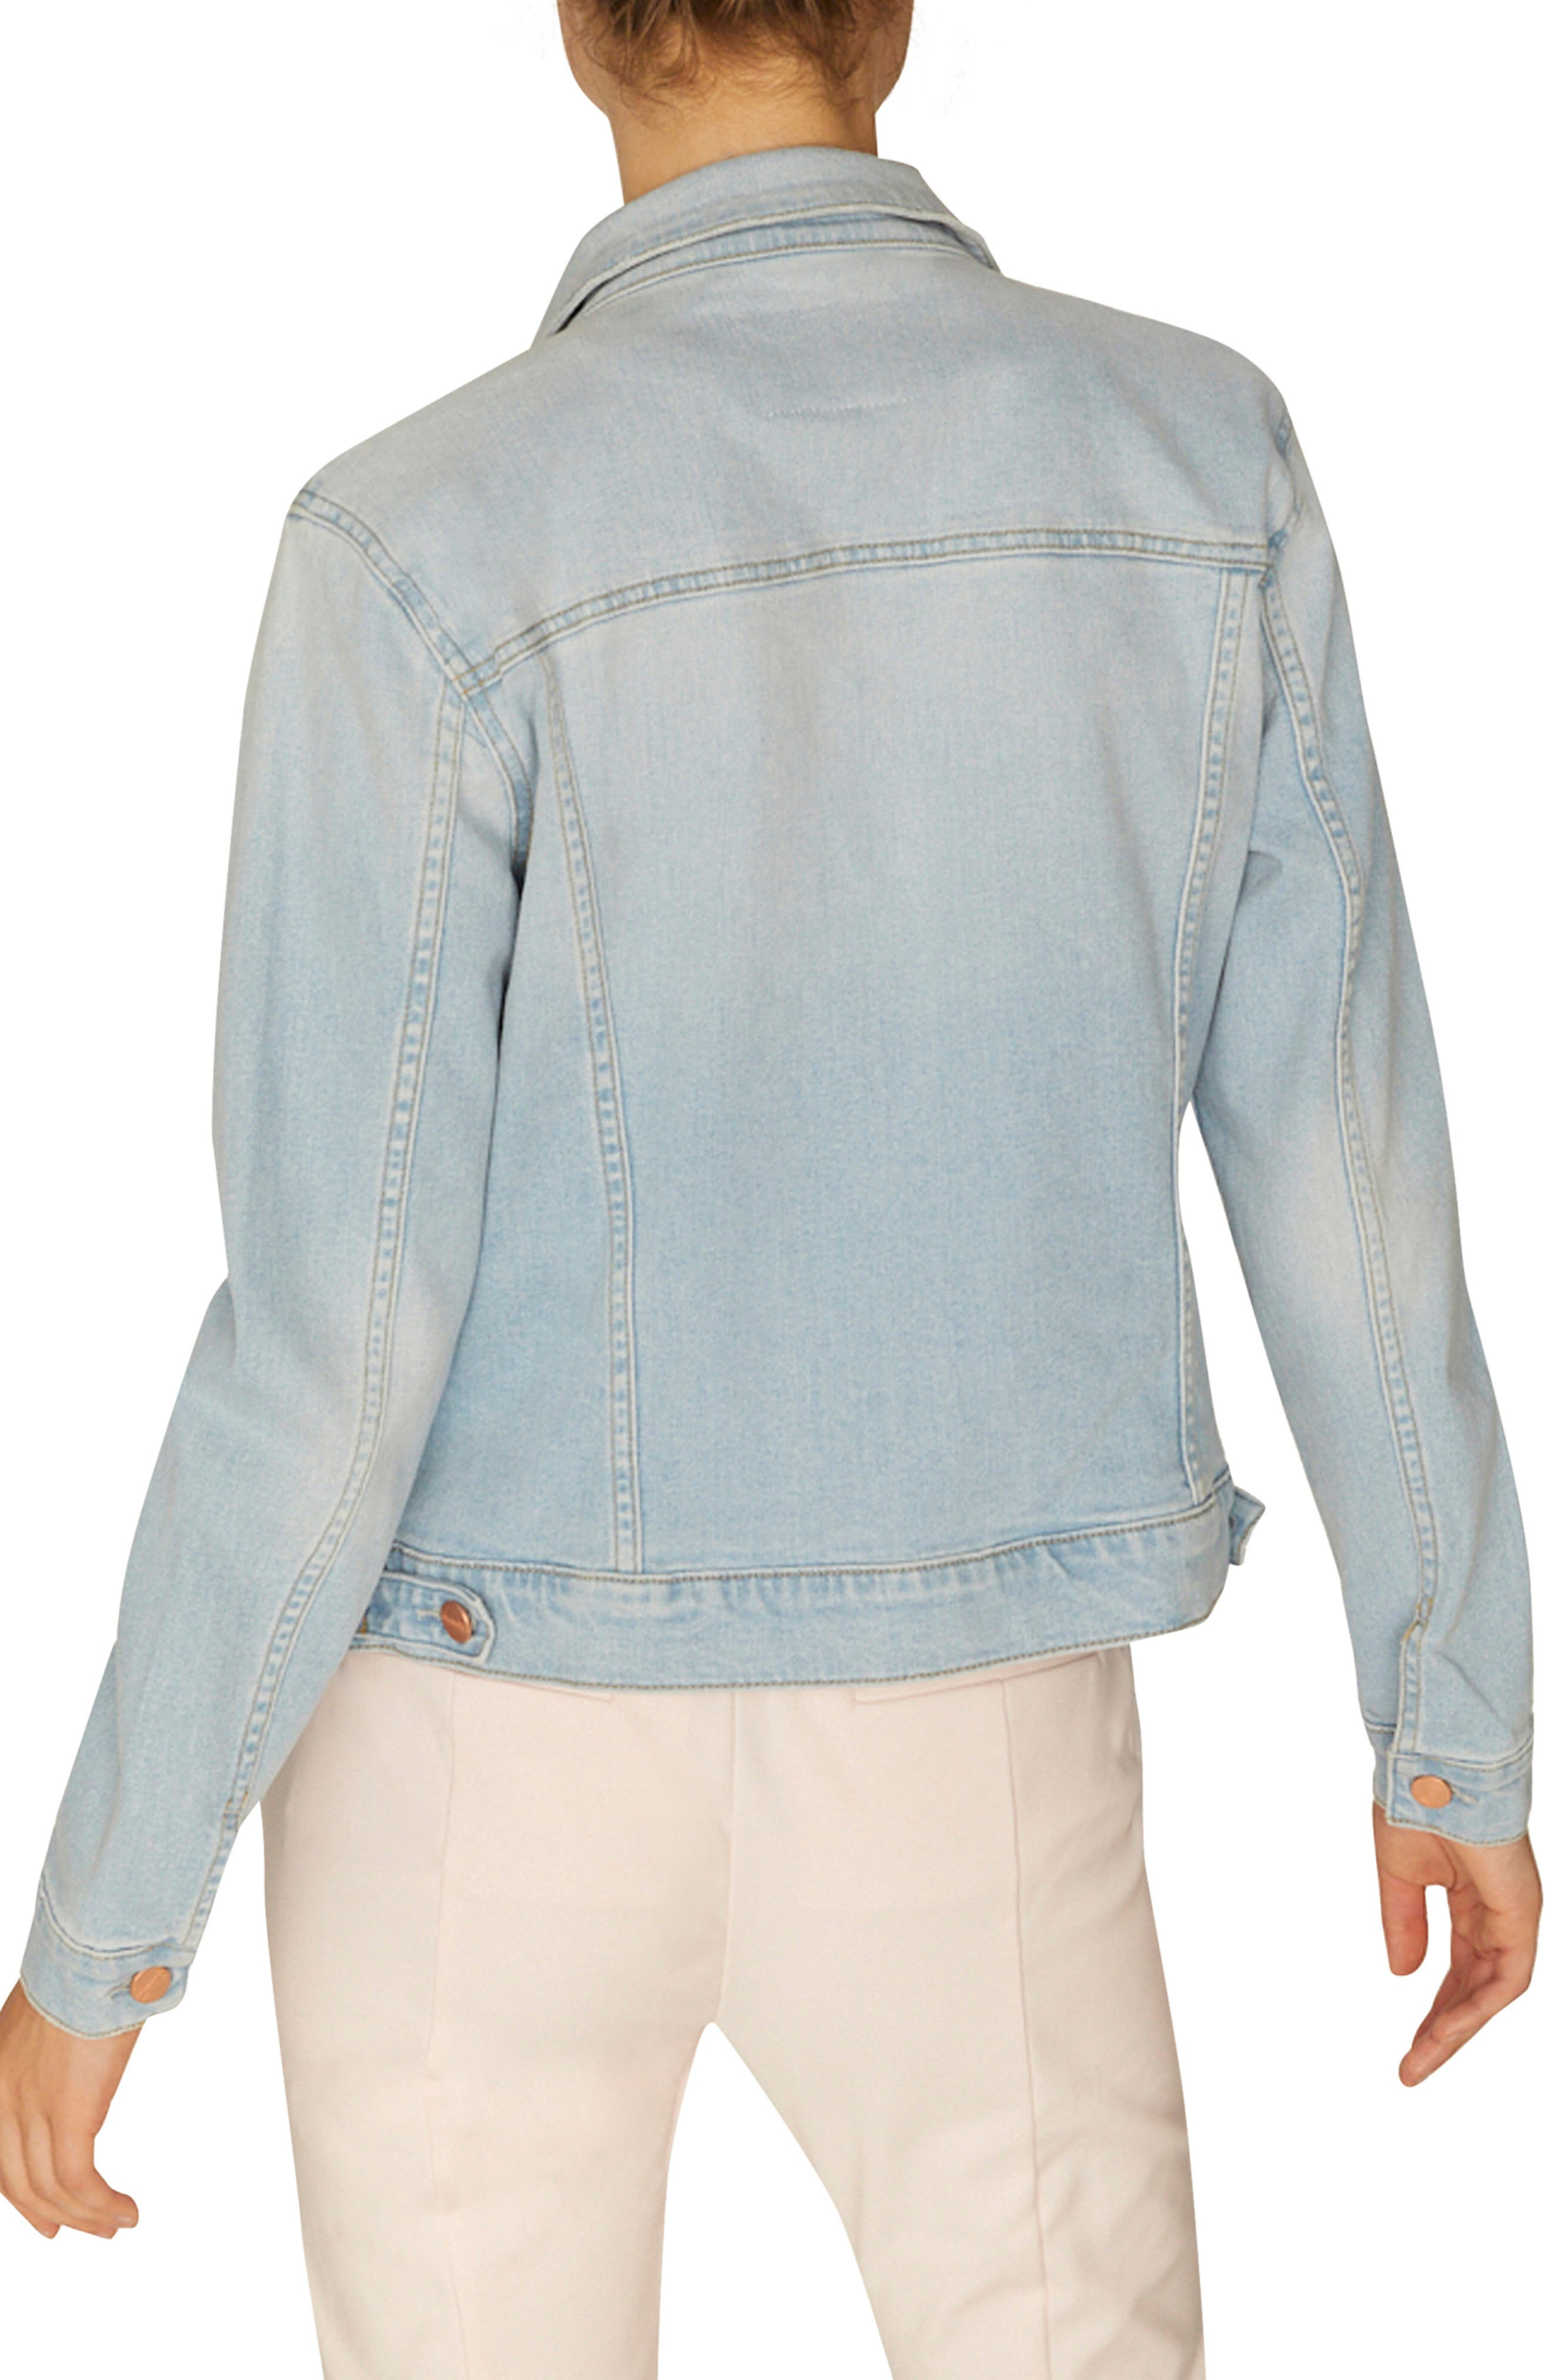 SANCTUARY, Kyle Denim Jacket, Alternate thumbnail 2, color, 450